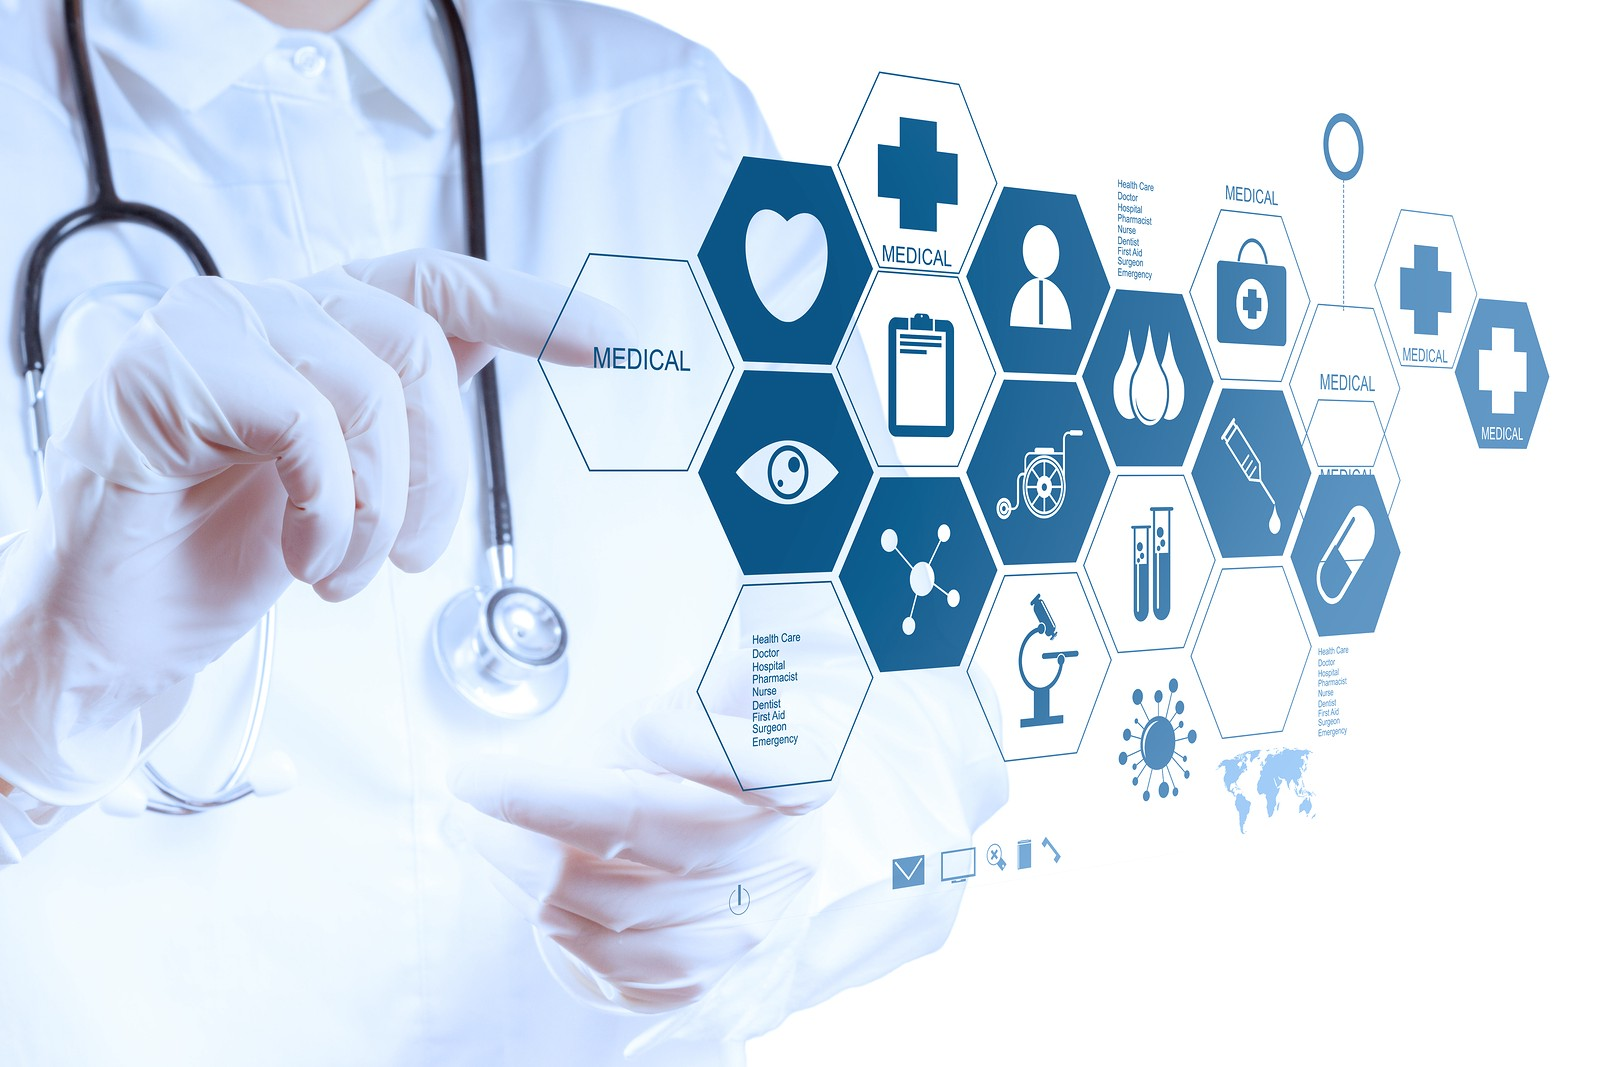 HealthCare: How Technology Impacts The Healthcare Industry